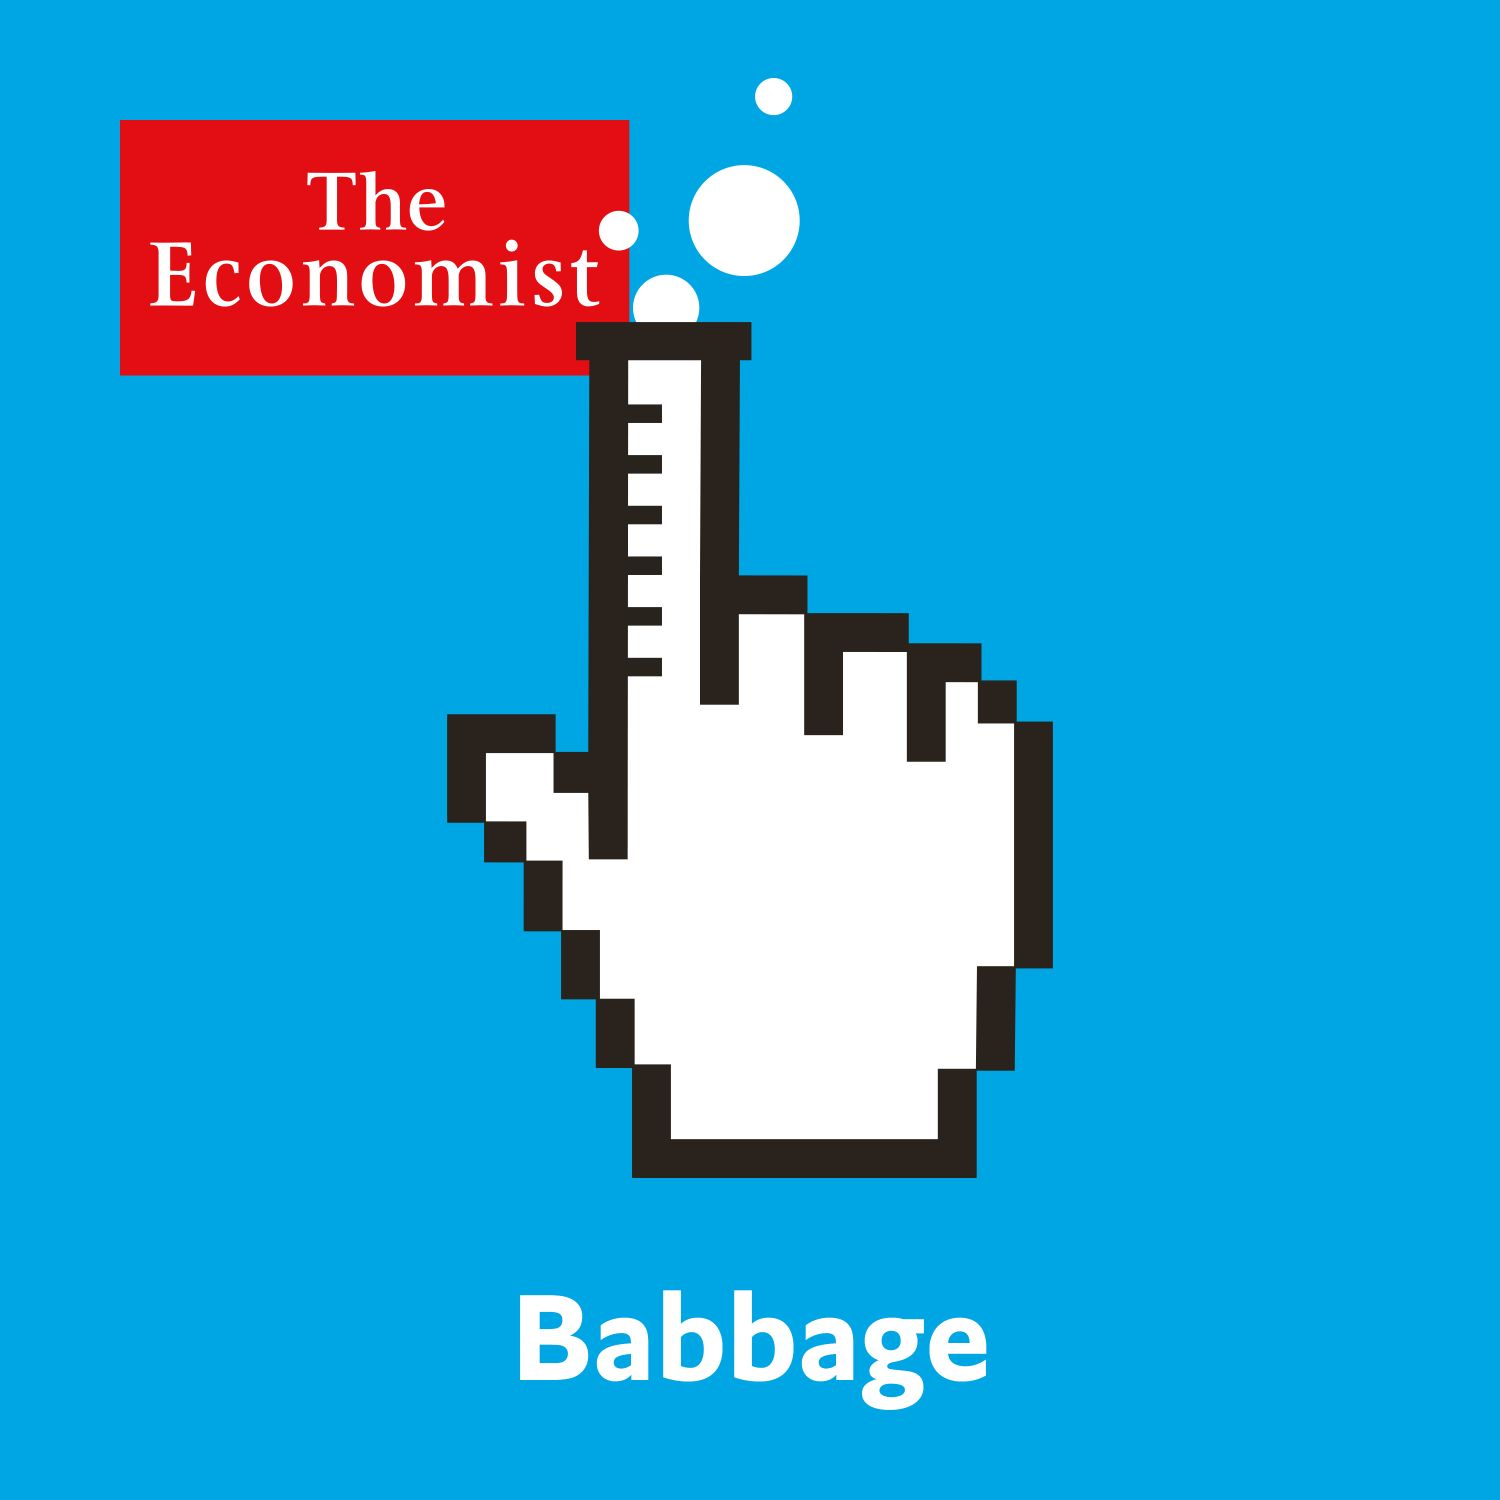 Babbage: What a difference half a degree makes